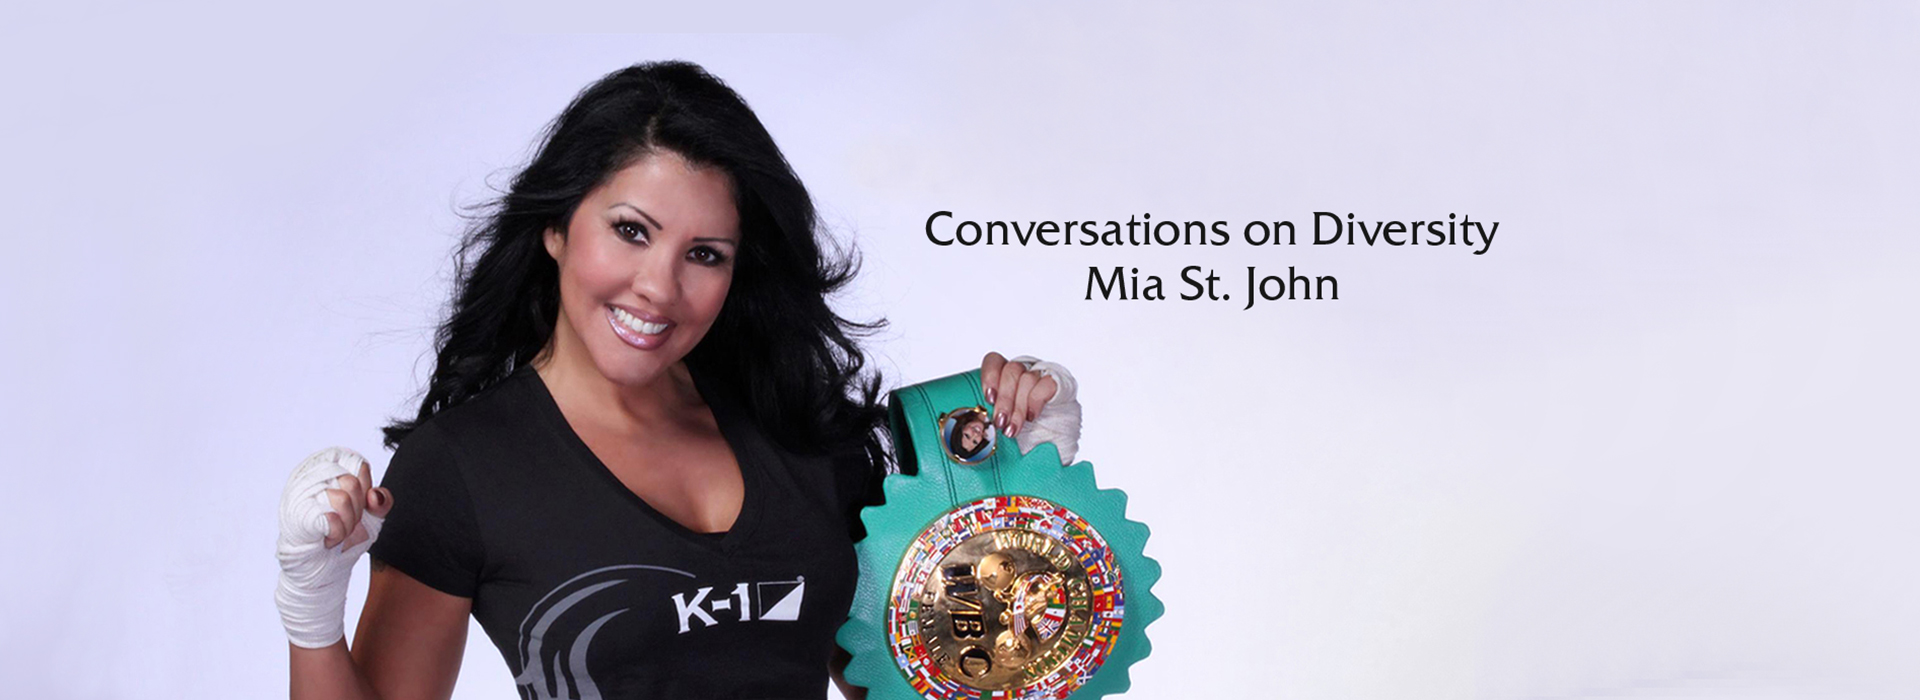 Noon today: World champion boxer Mia St. John to speak at CSUSB's Conversations on Diversity event